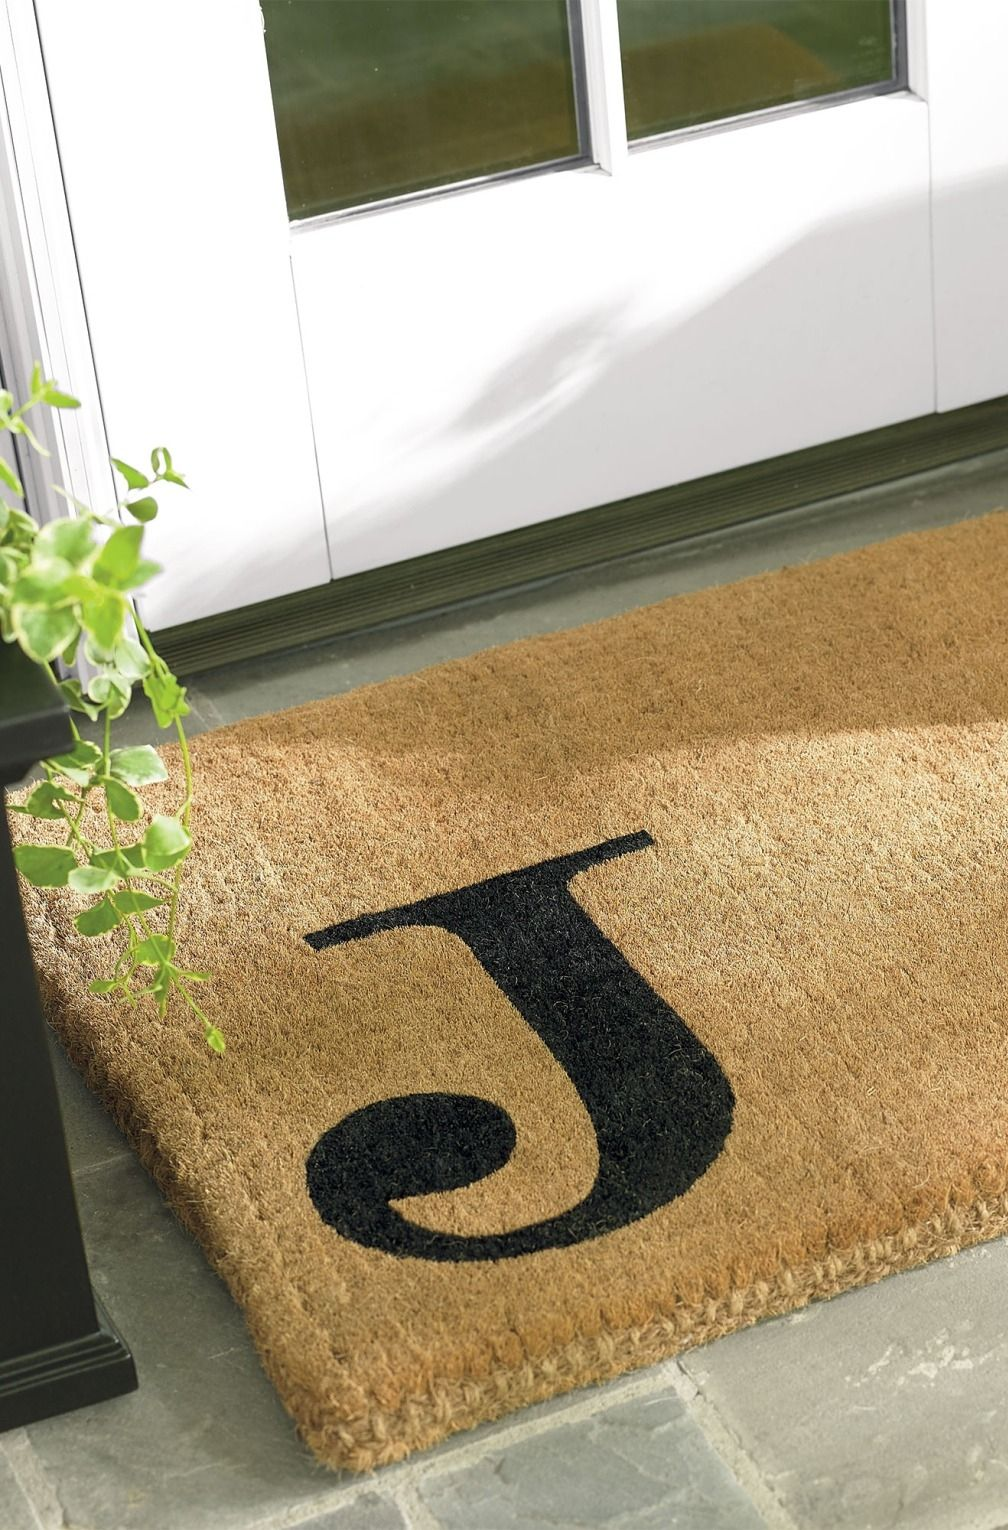 em htm indoor miss monogram mats item mat welcome doormat prints outdoor closeupdoormat